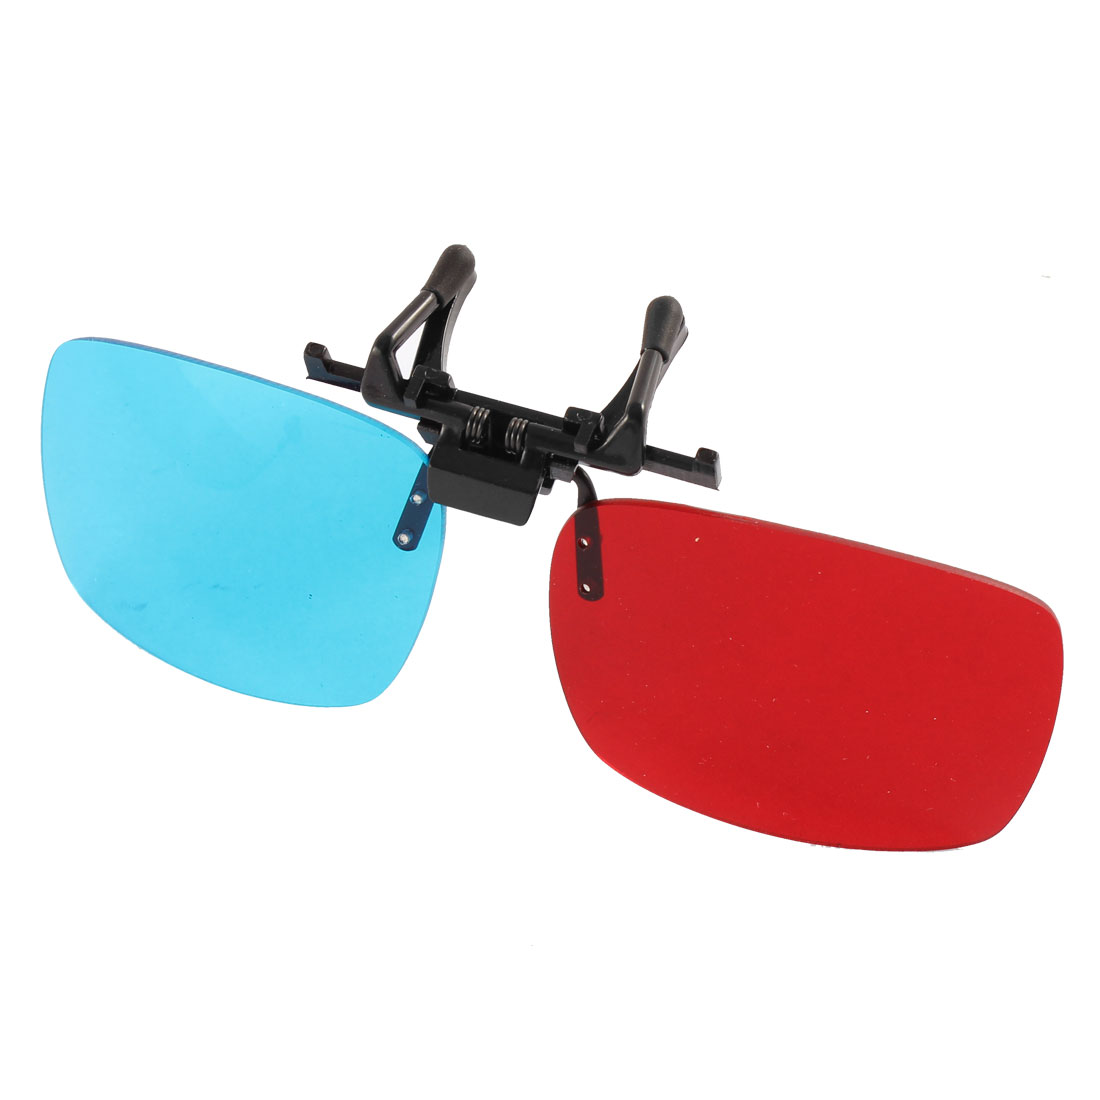 3D Polarized Clip on Sunglass Glasses Eyeglasses Spectacle for Home Cinema Movie Film